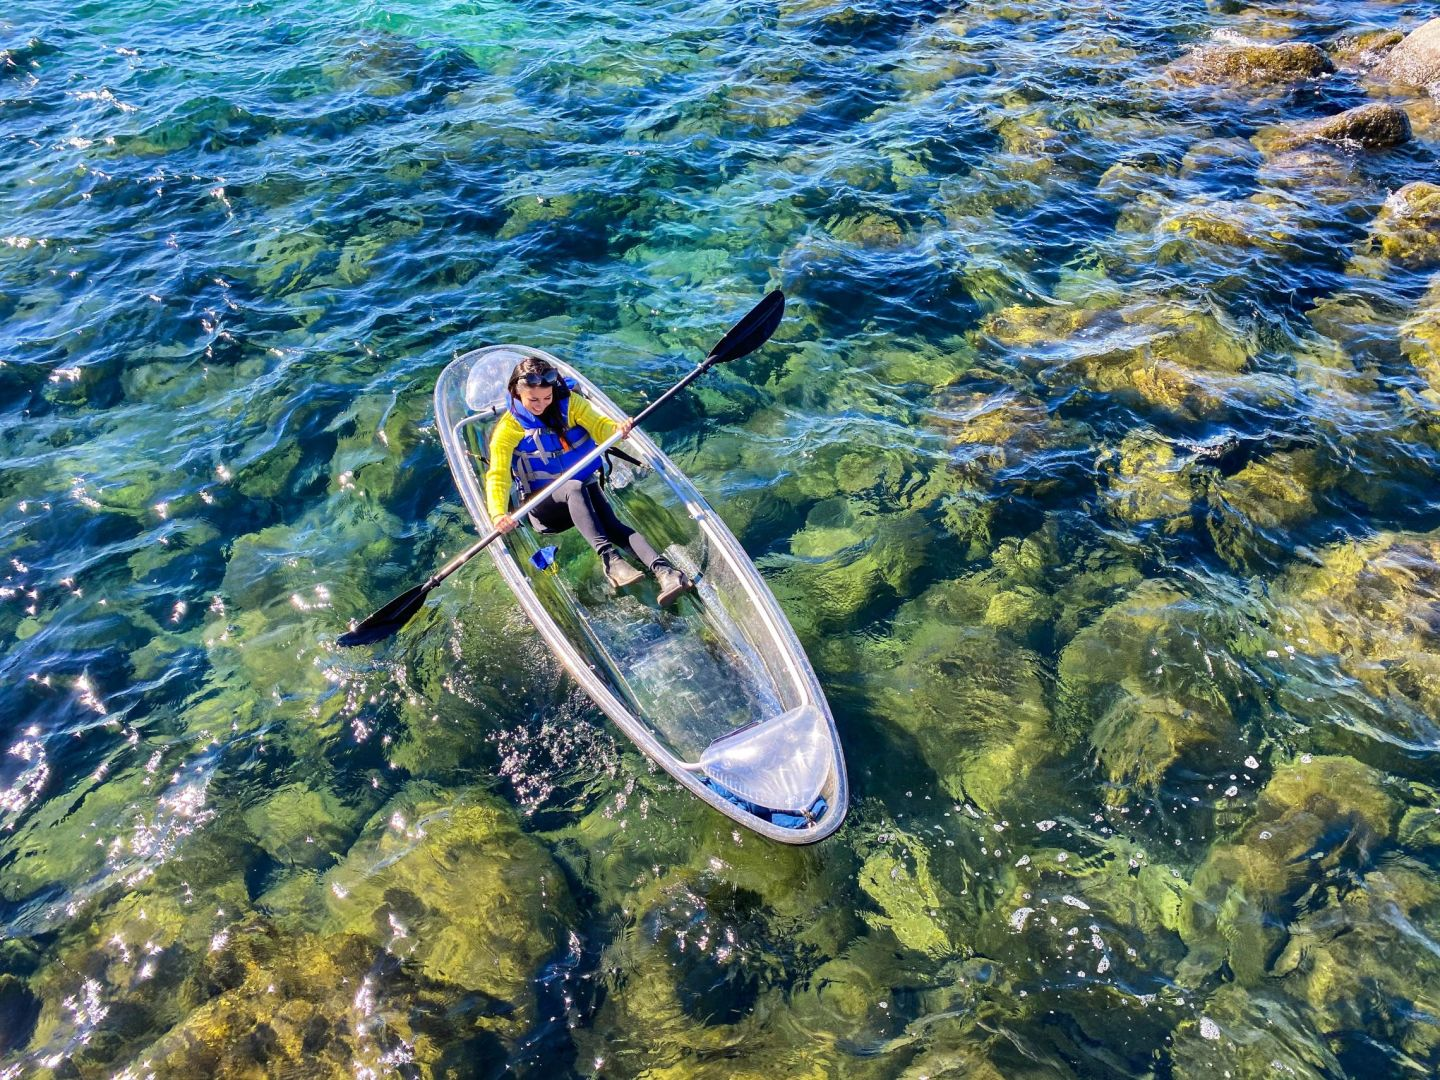 An unreal way to spend the day on Lake Tahoe: in a clear kayak!